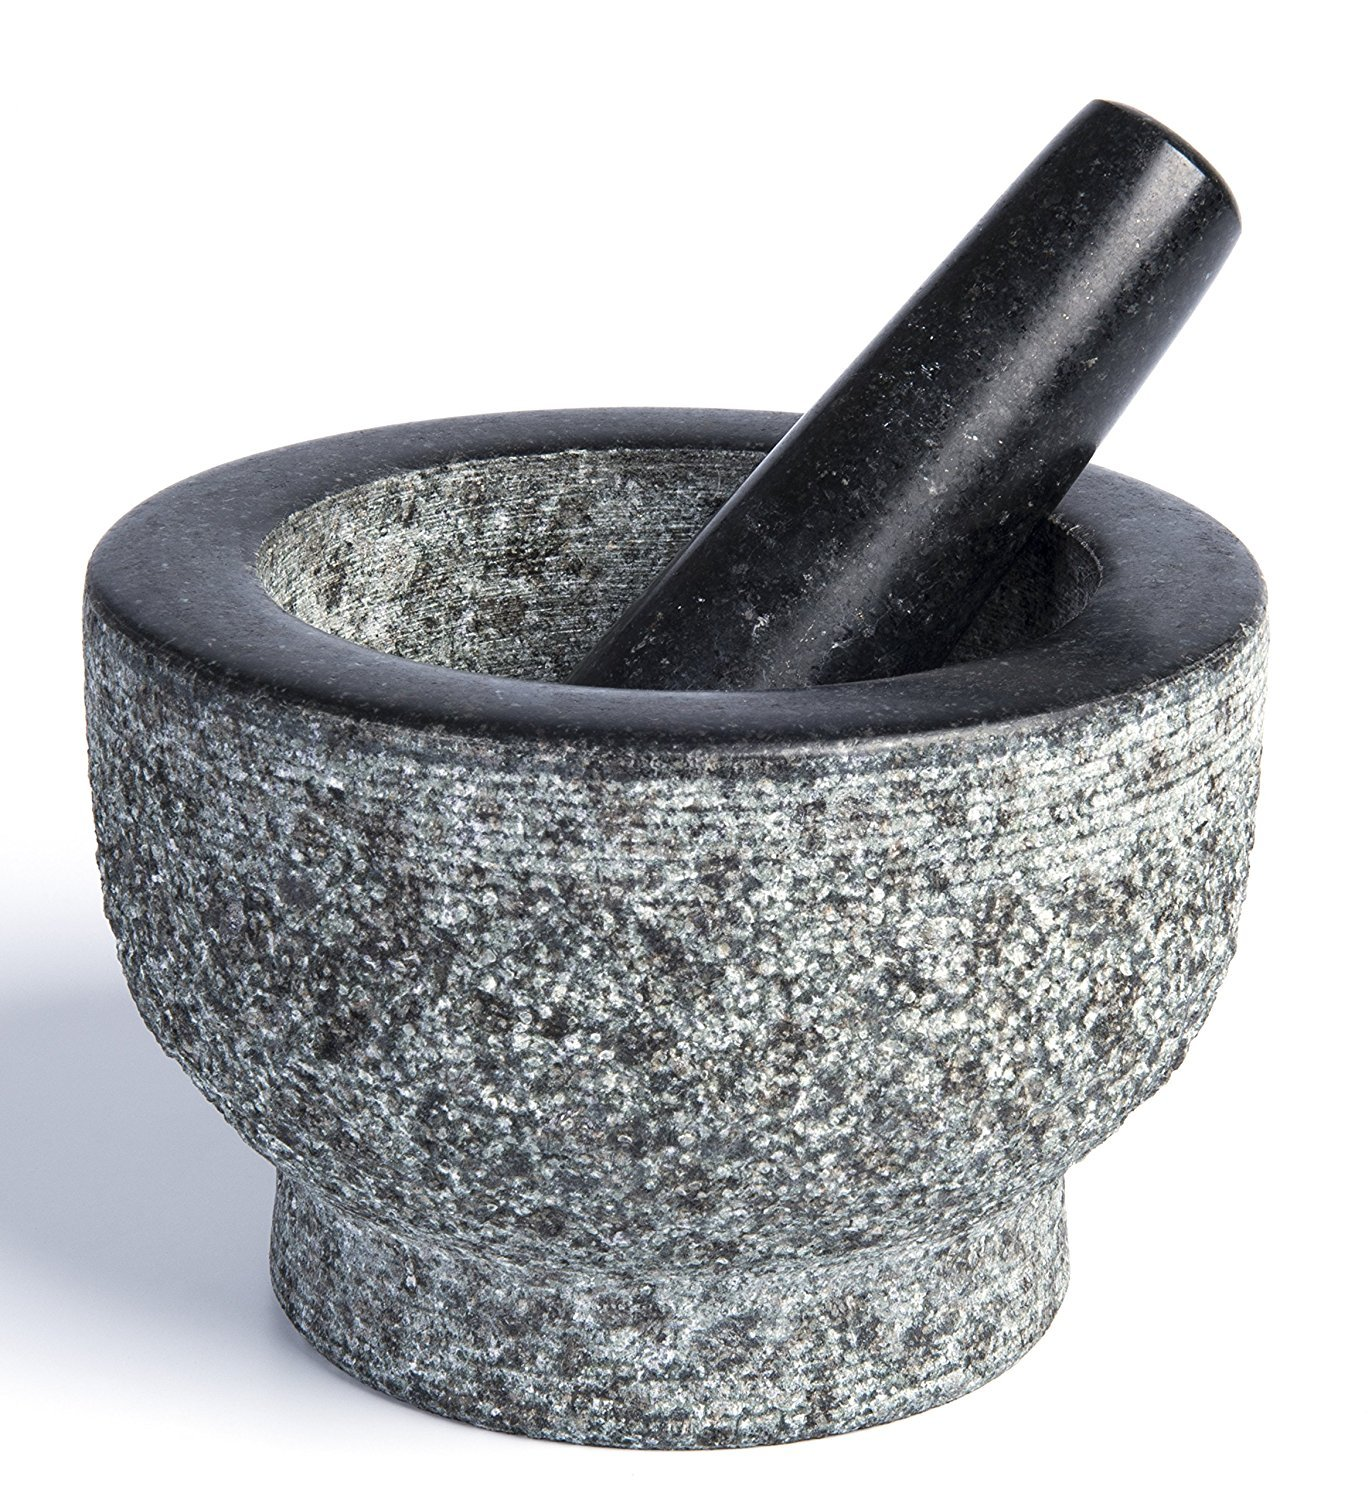 Granite Mortar and Pestle by HiCoup - Natural Unpolished, Non Porous, Dishwasher Safe Mortar and Pestle Set, 6 Inch Large HiCoup Kitchenware HK-06